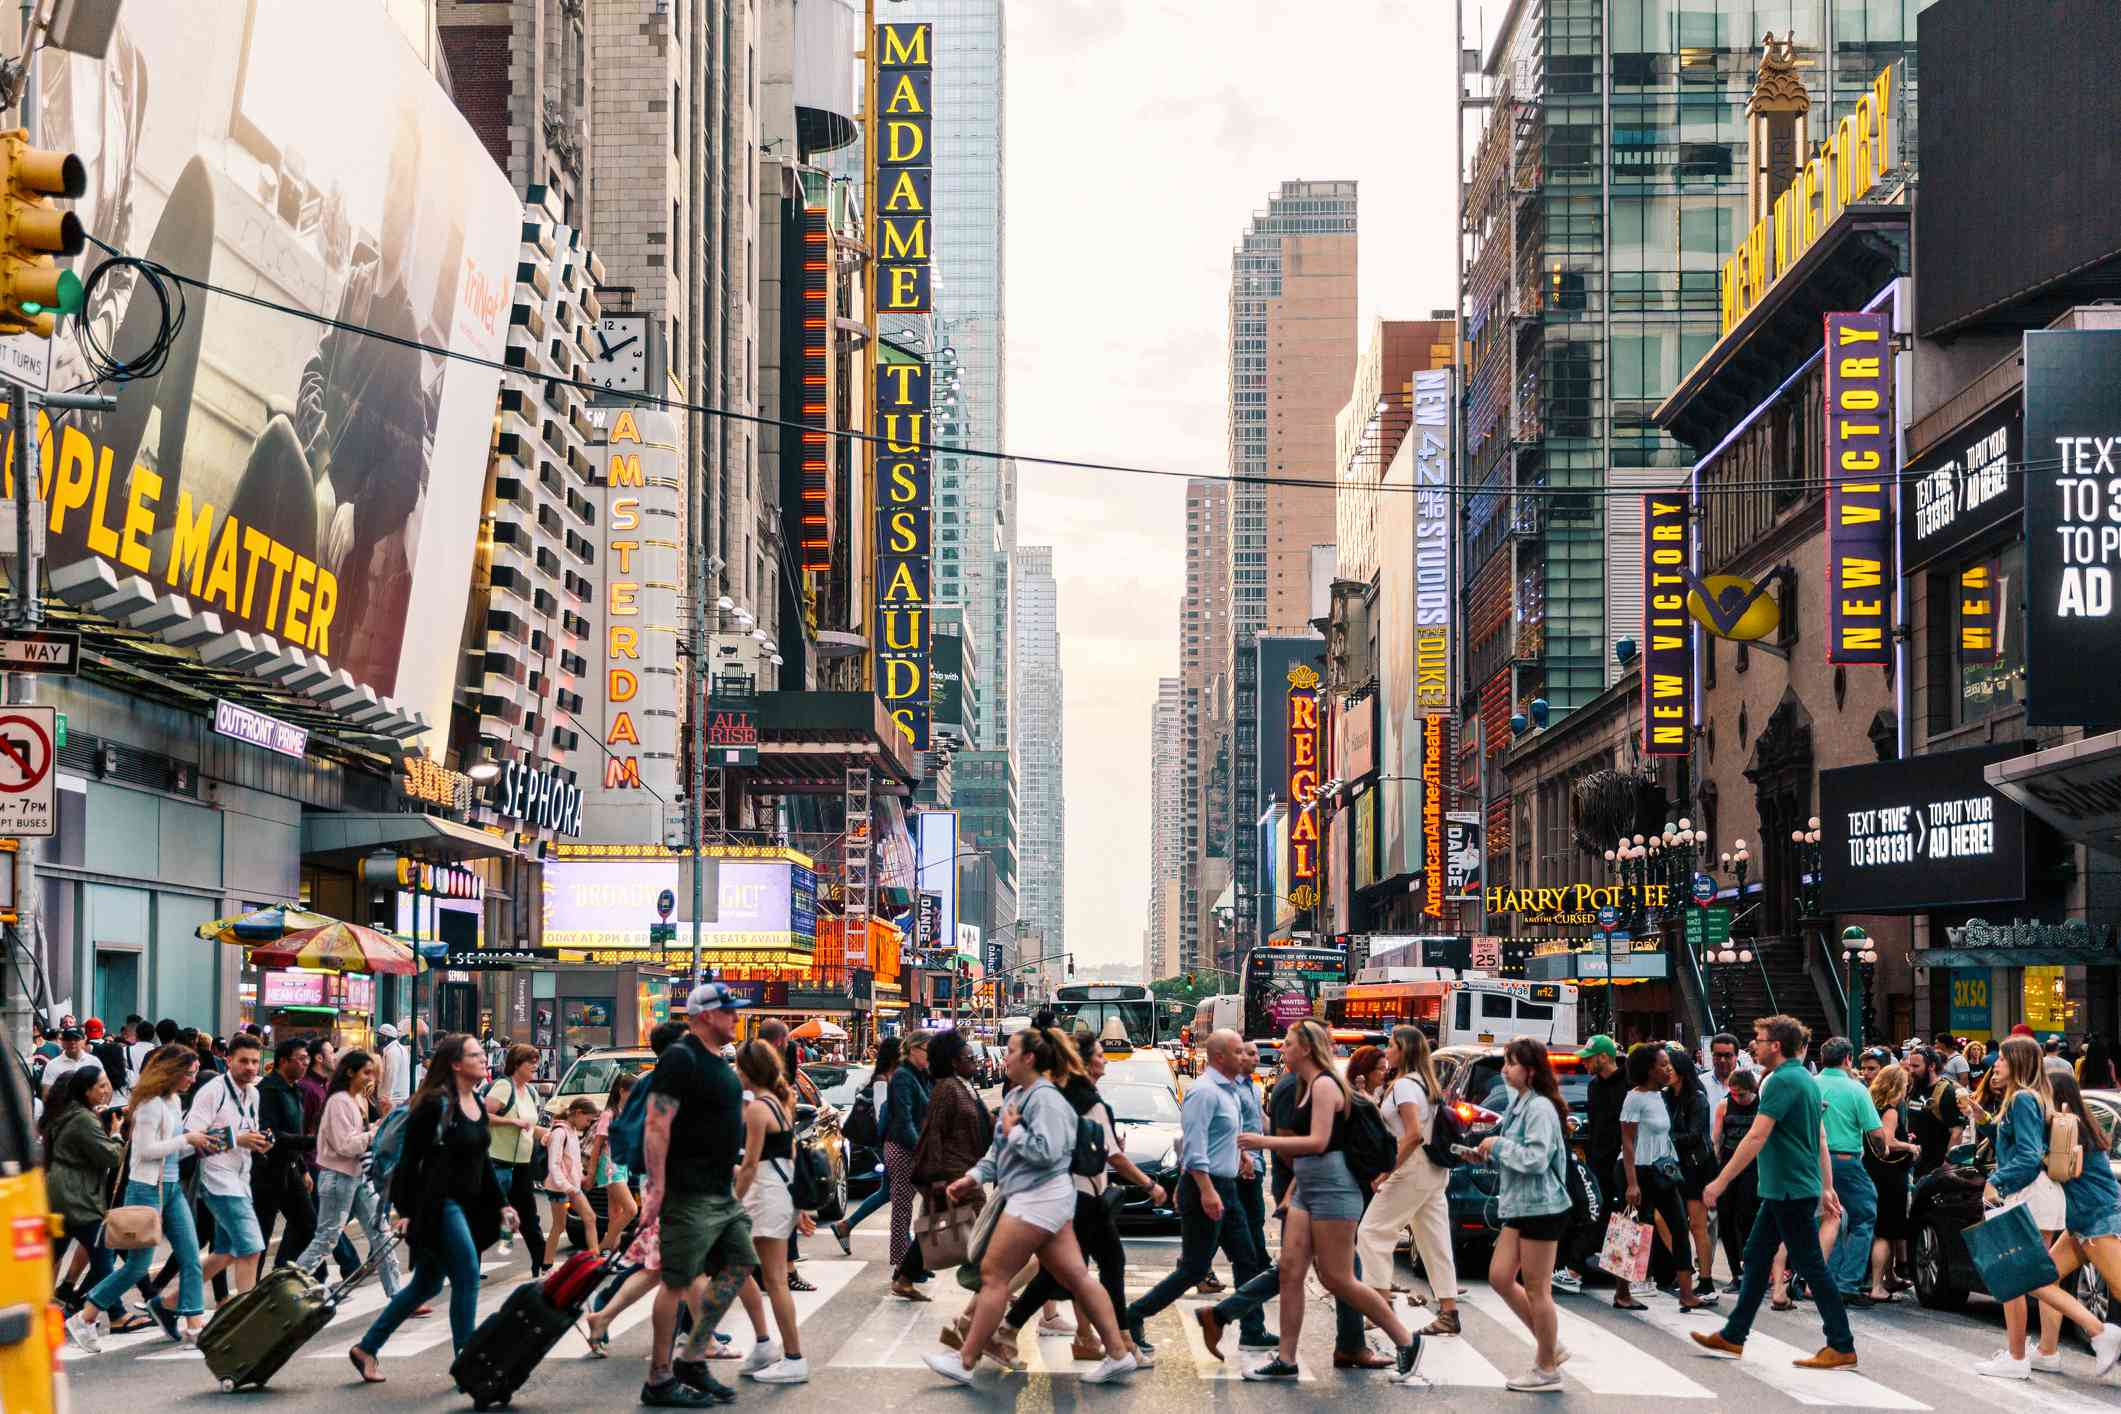 Crowd of people crossing the street in New York City